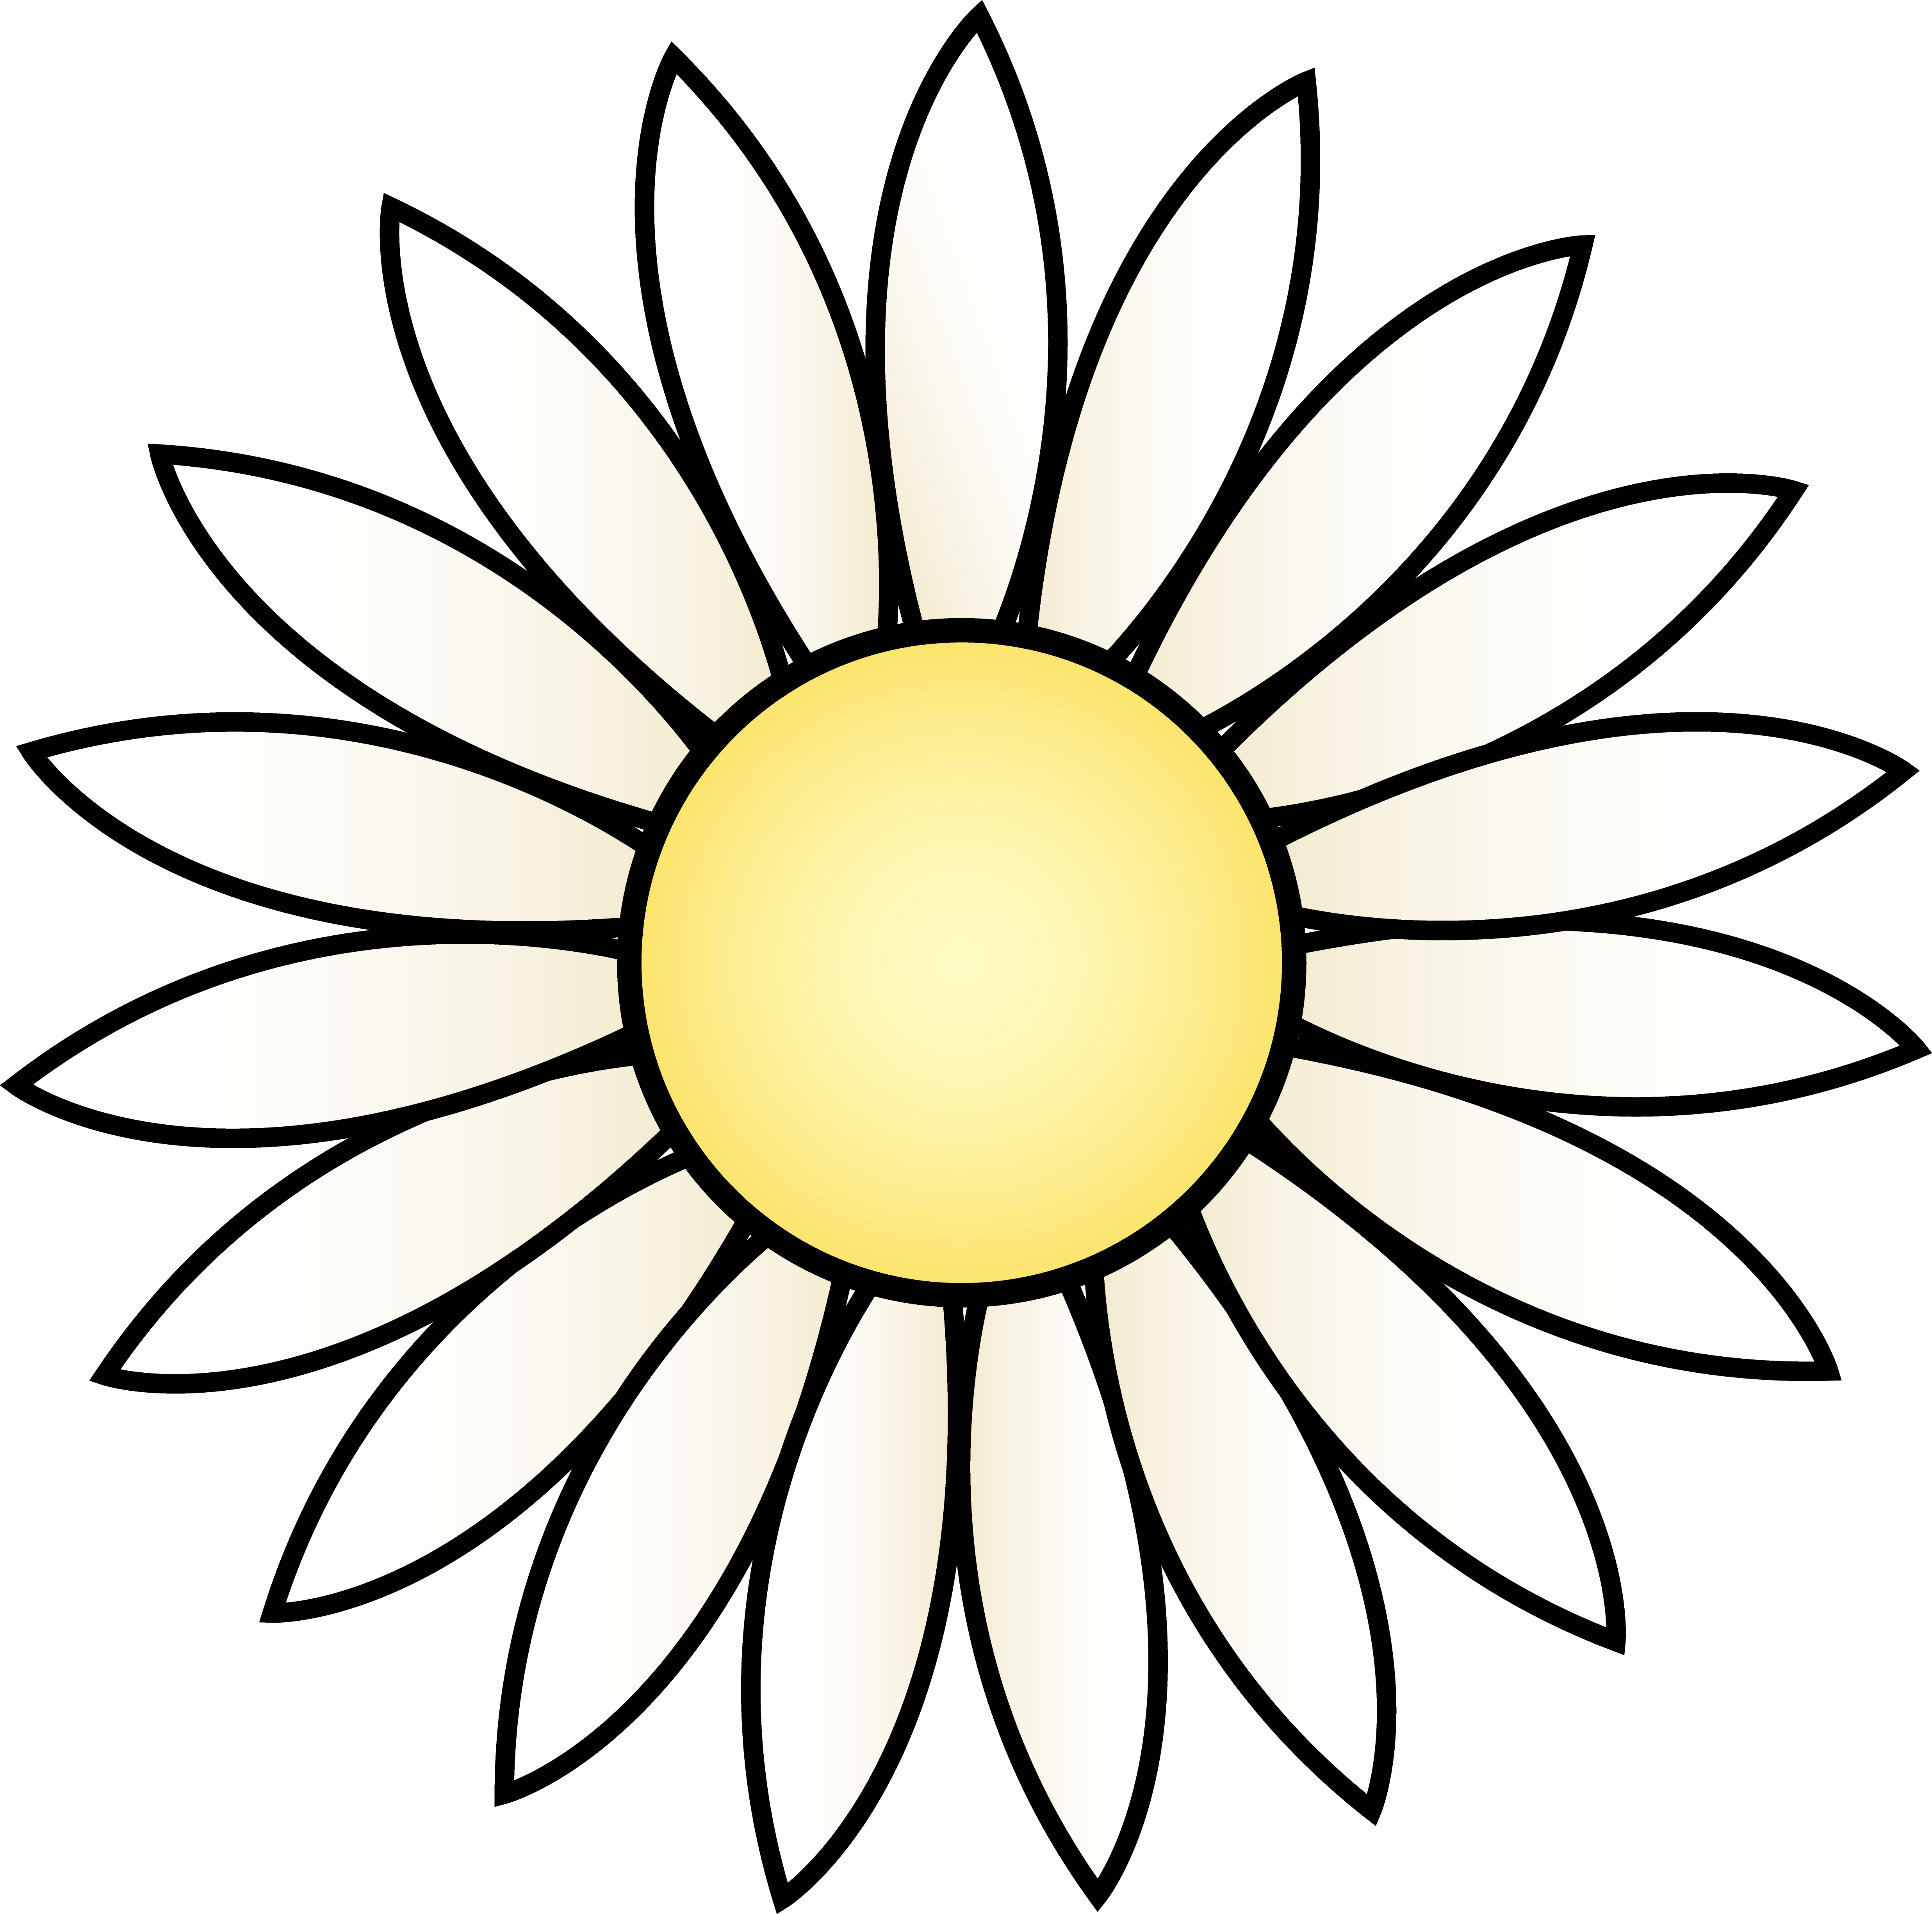 Drawing template at getdrawings. White clipart sunflower